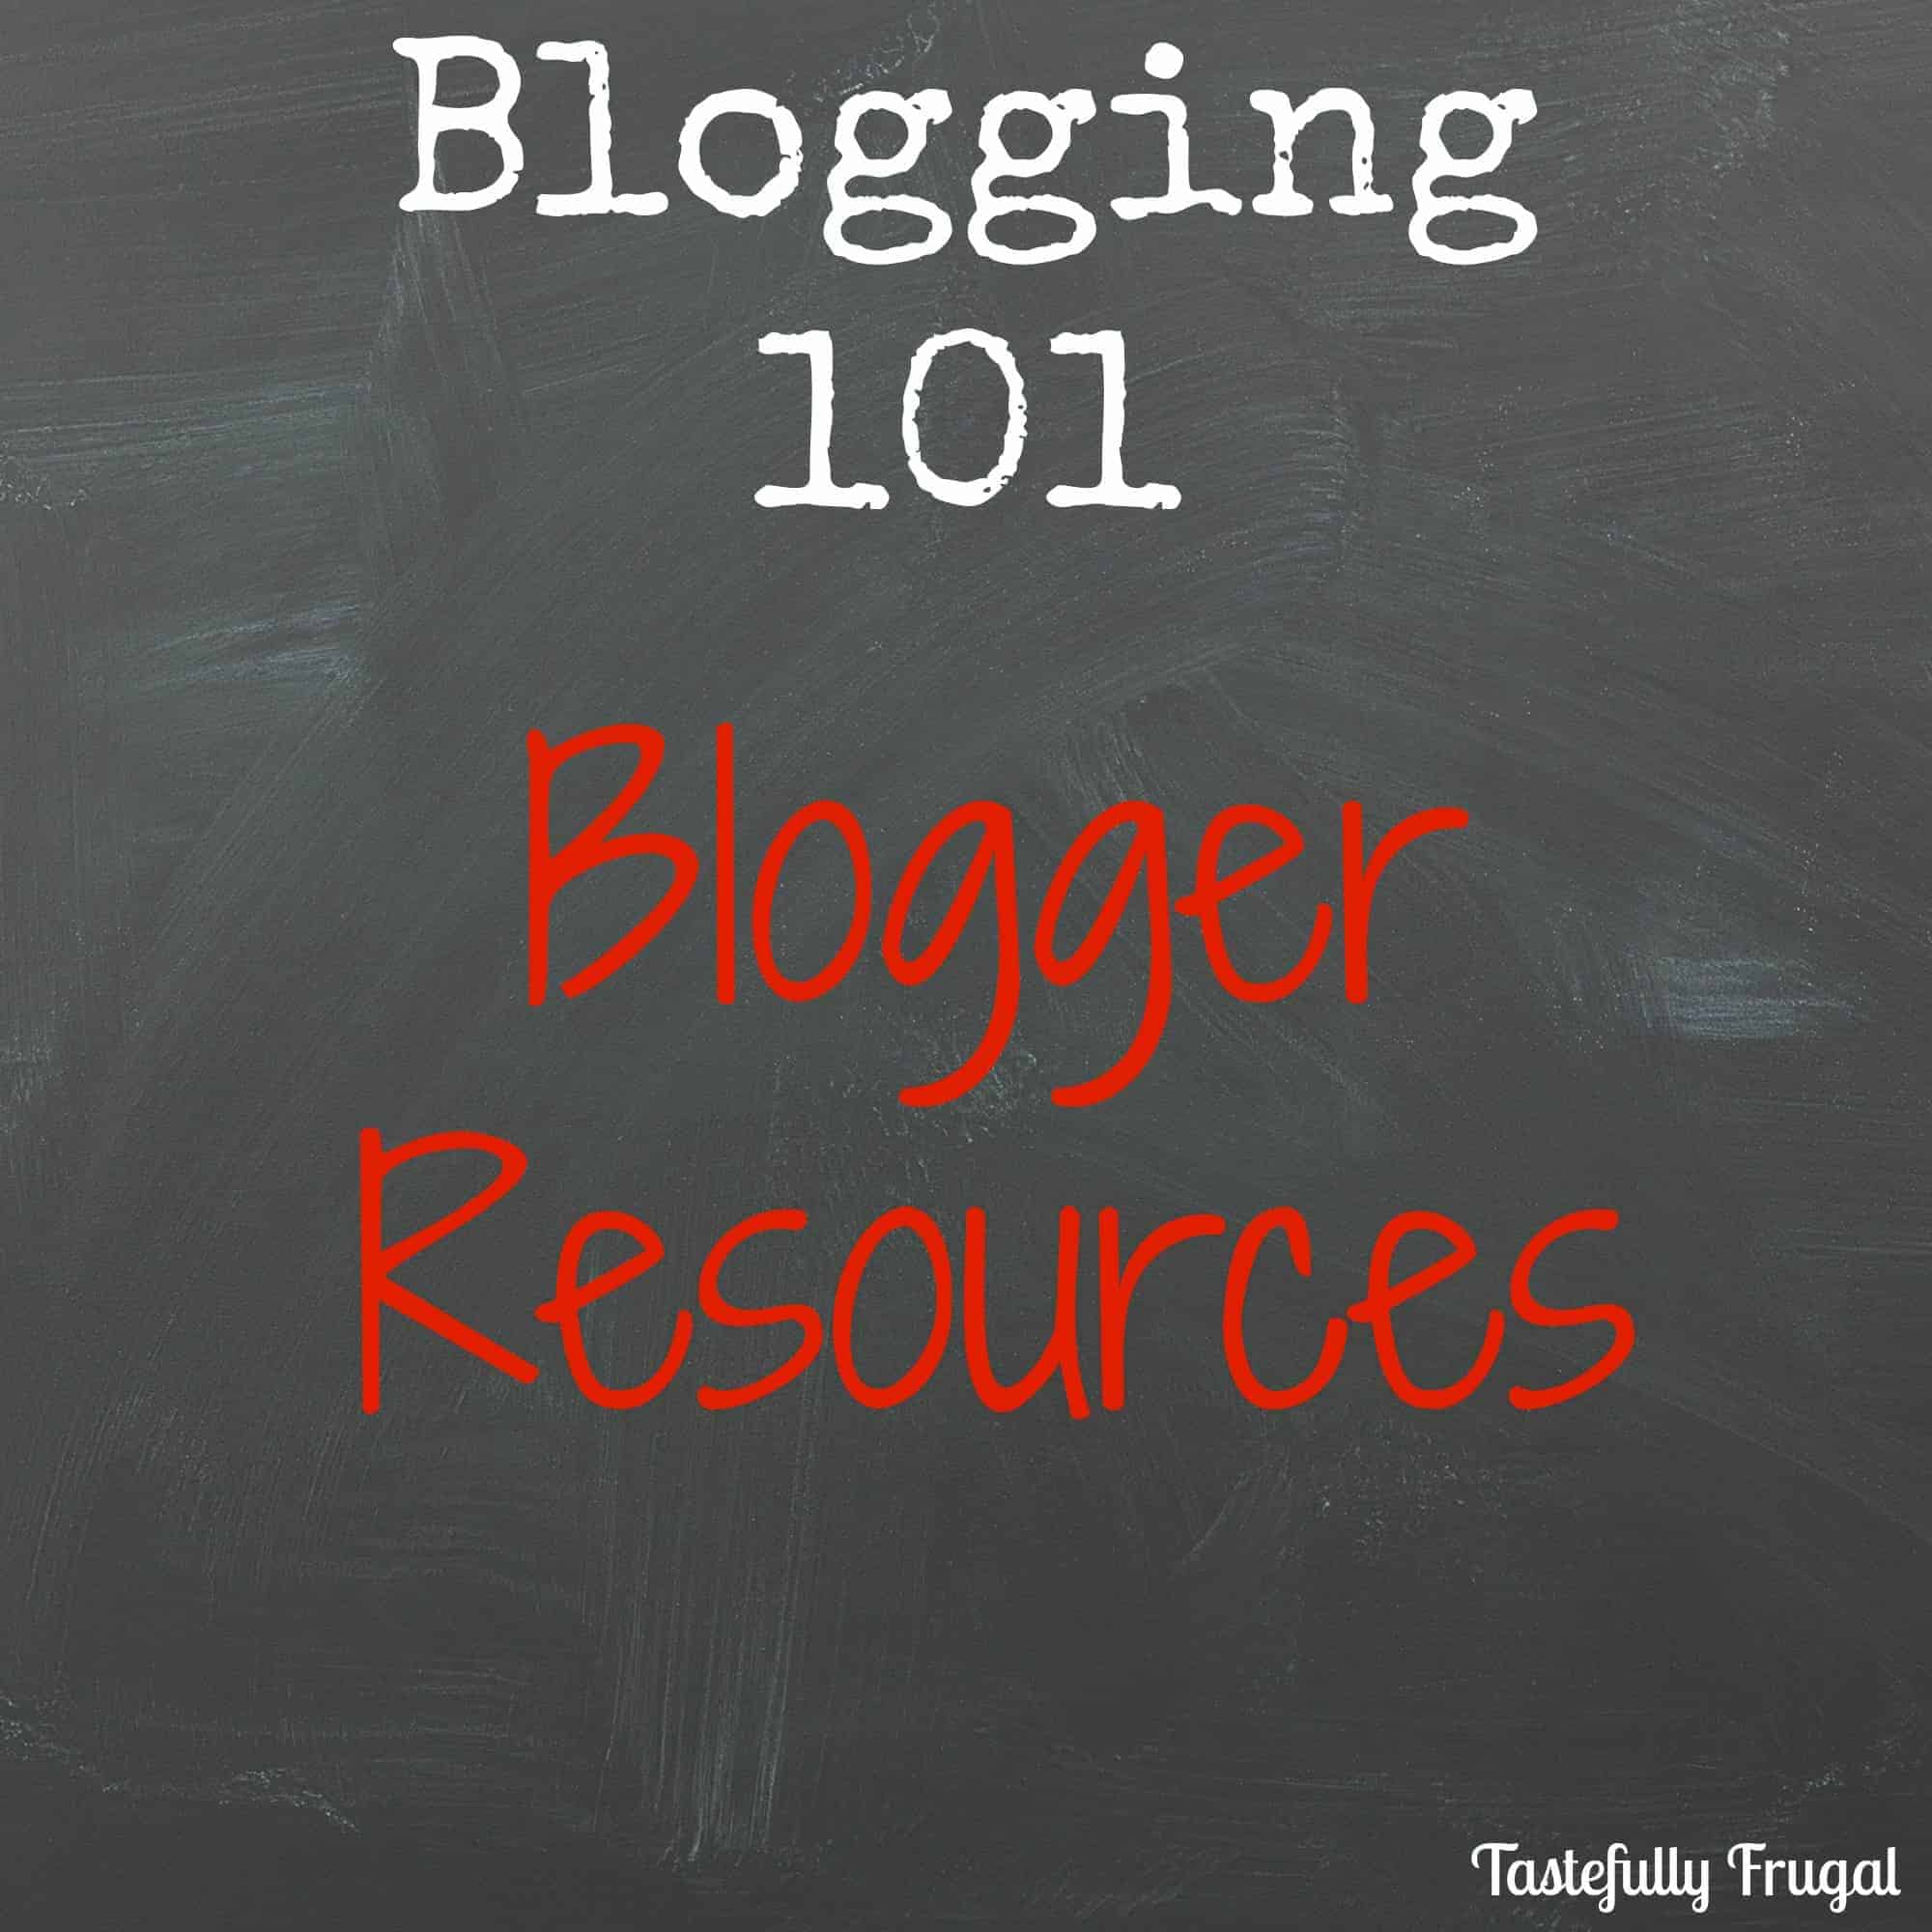 Blogging 101: Blogger Resources